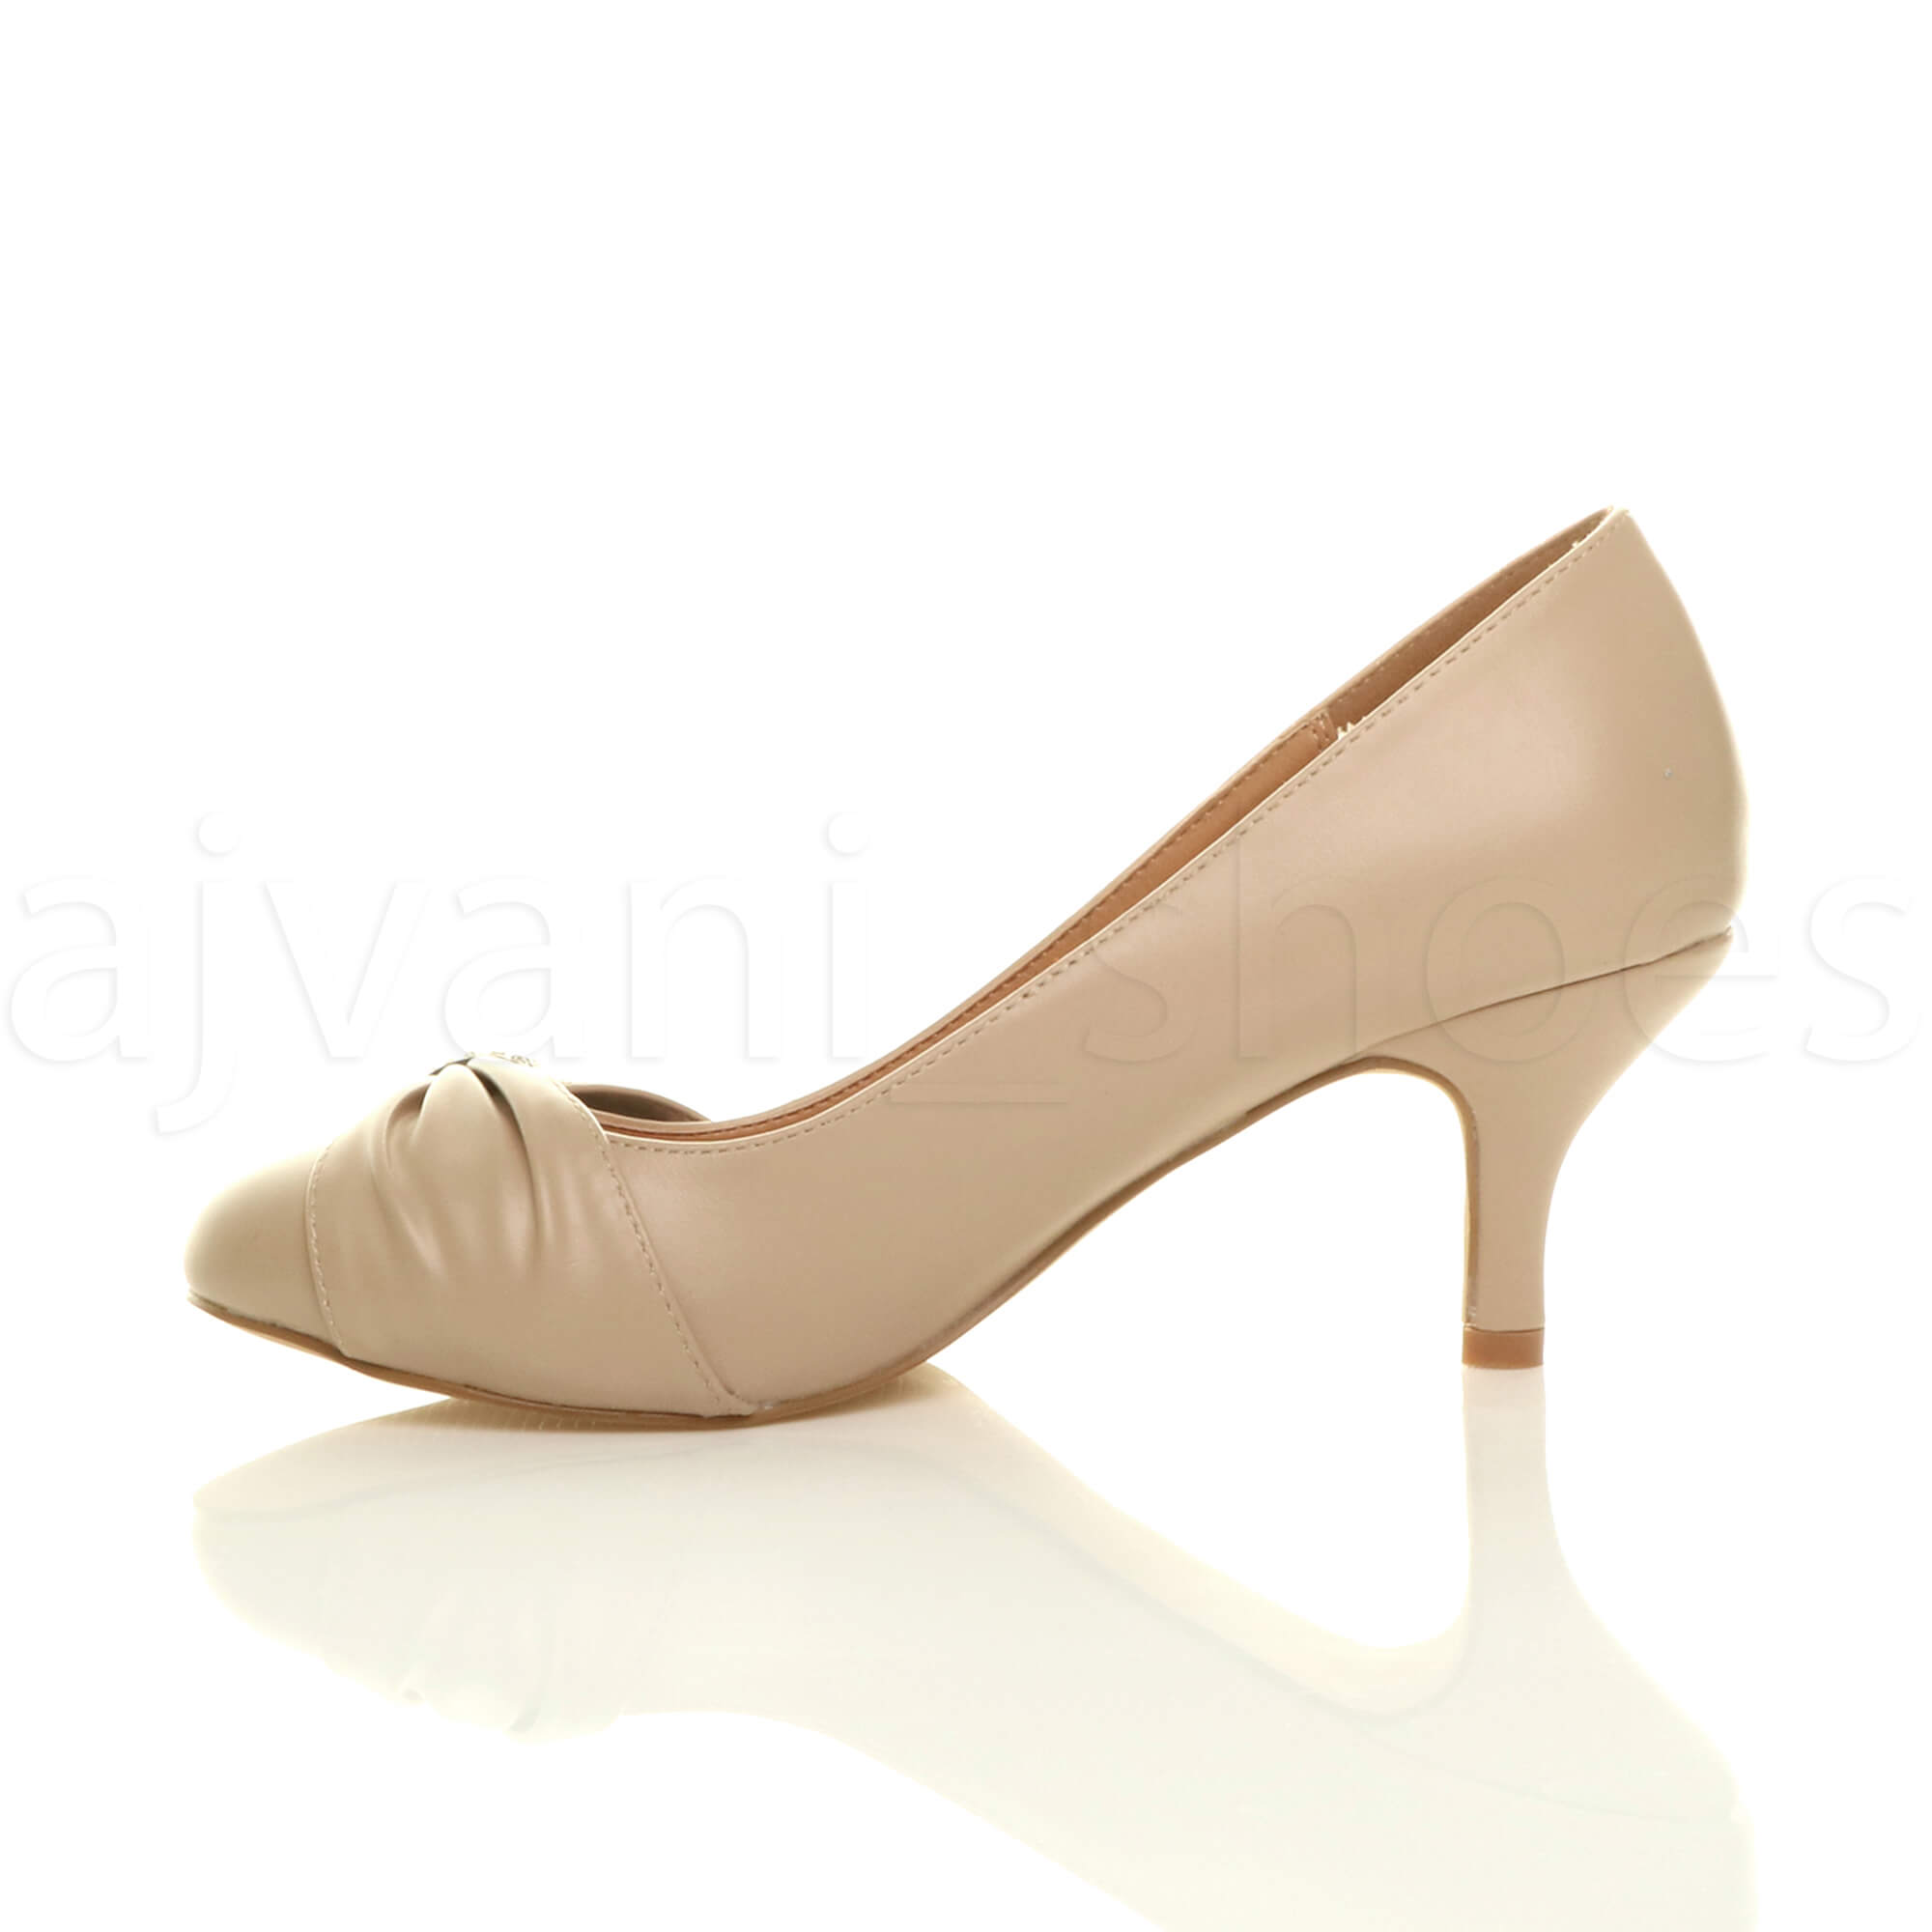 WOMENS-LADIES-MID-HEEL-RUCHED-DIAMANTE-WEDDING-PROM-EVENING-COURT-SHOES-SIZE thumbnail 60